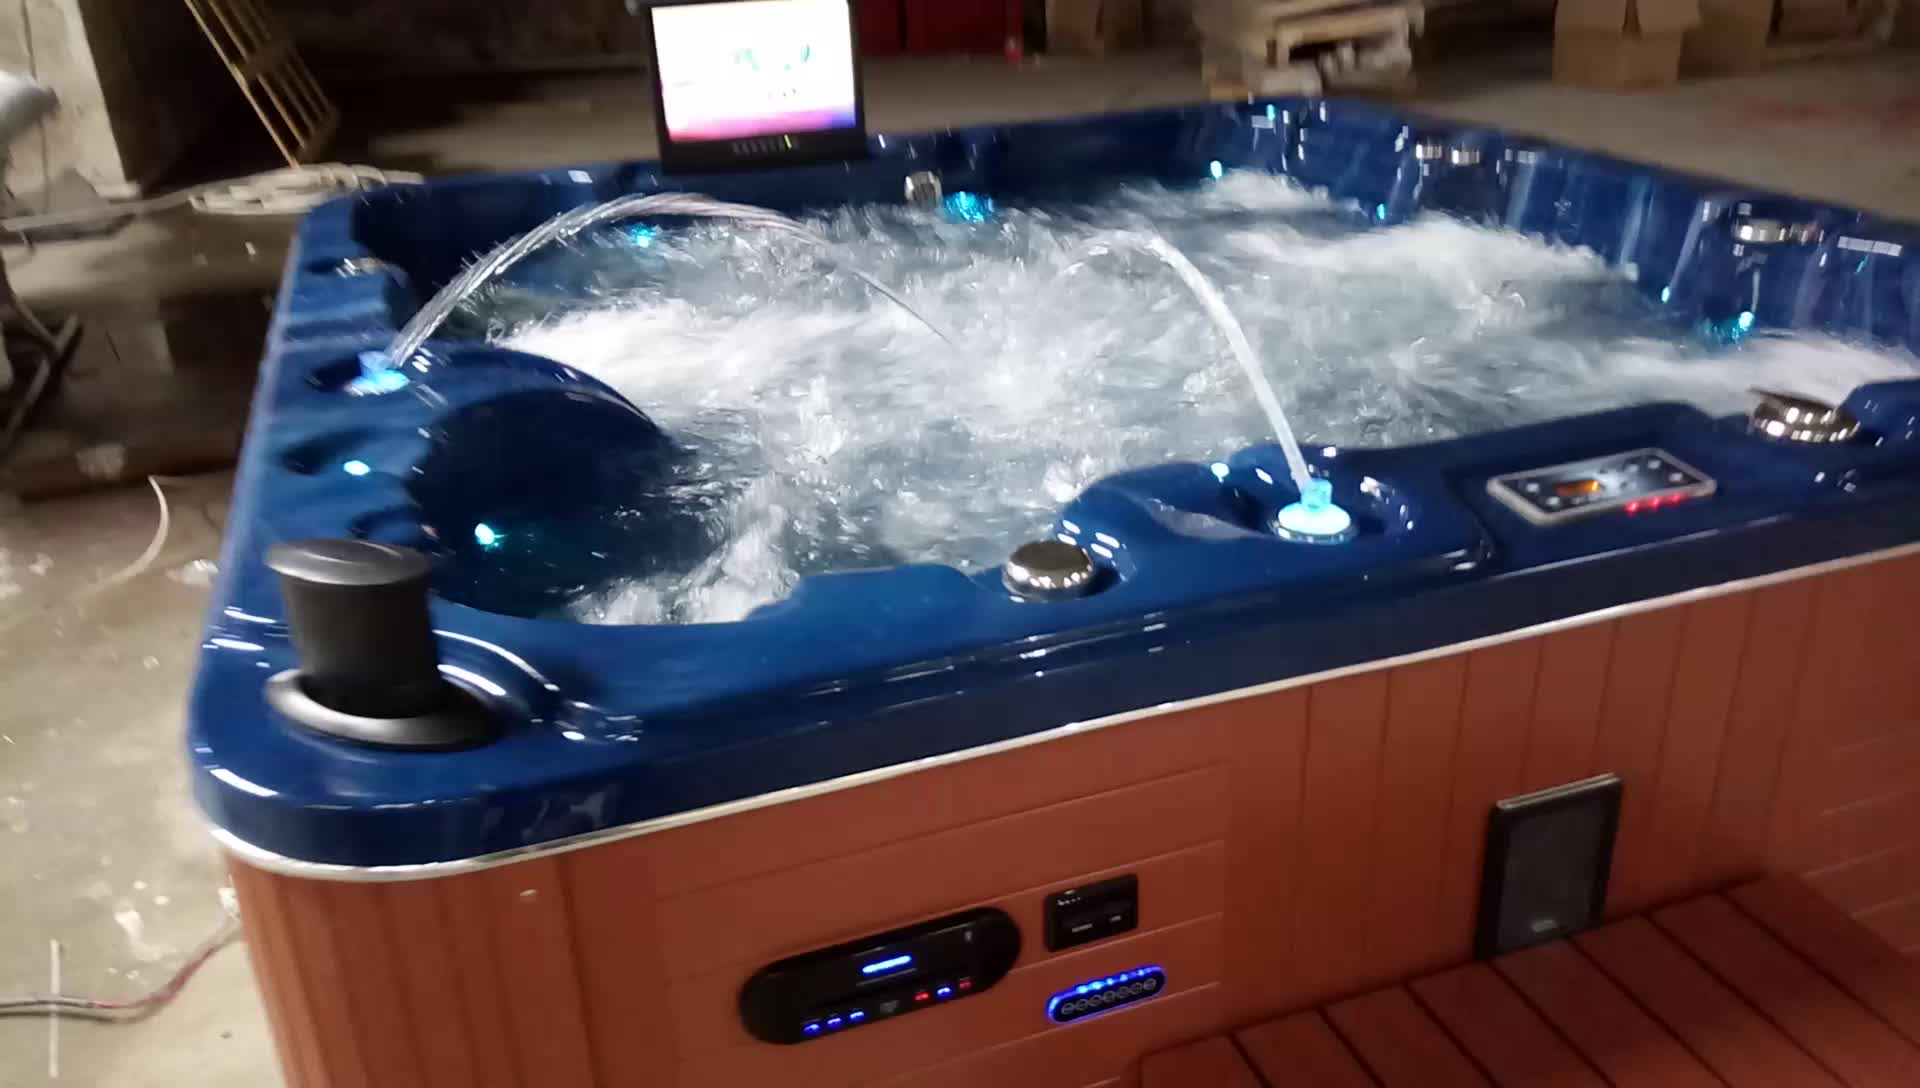 tips hot tubs the in galaxy all kitchen vegas from cleaning superstore maintenance outdoor of tub jacuzzi portable las jacuzziboise sale one for